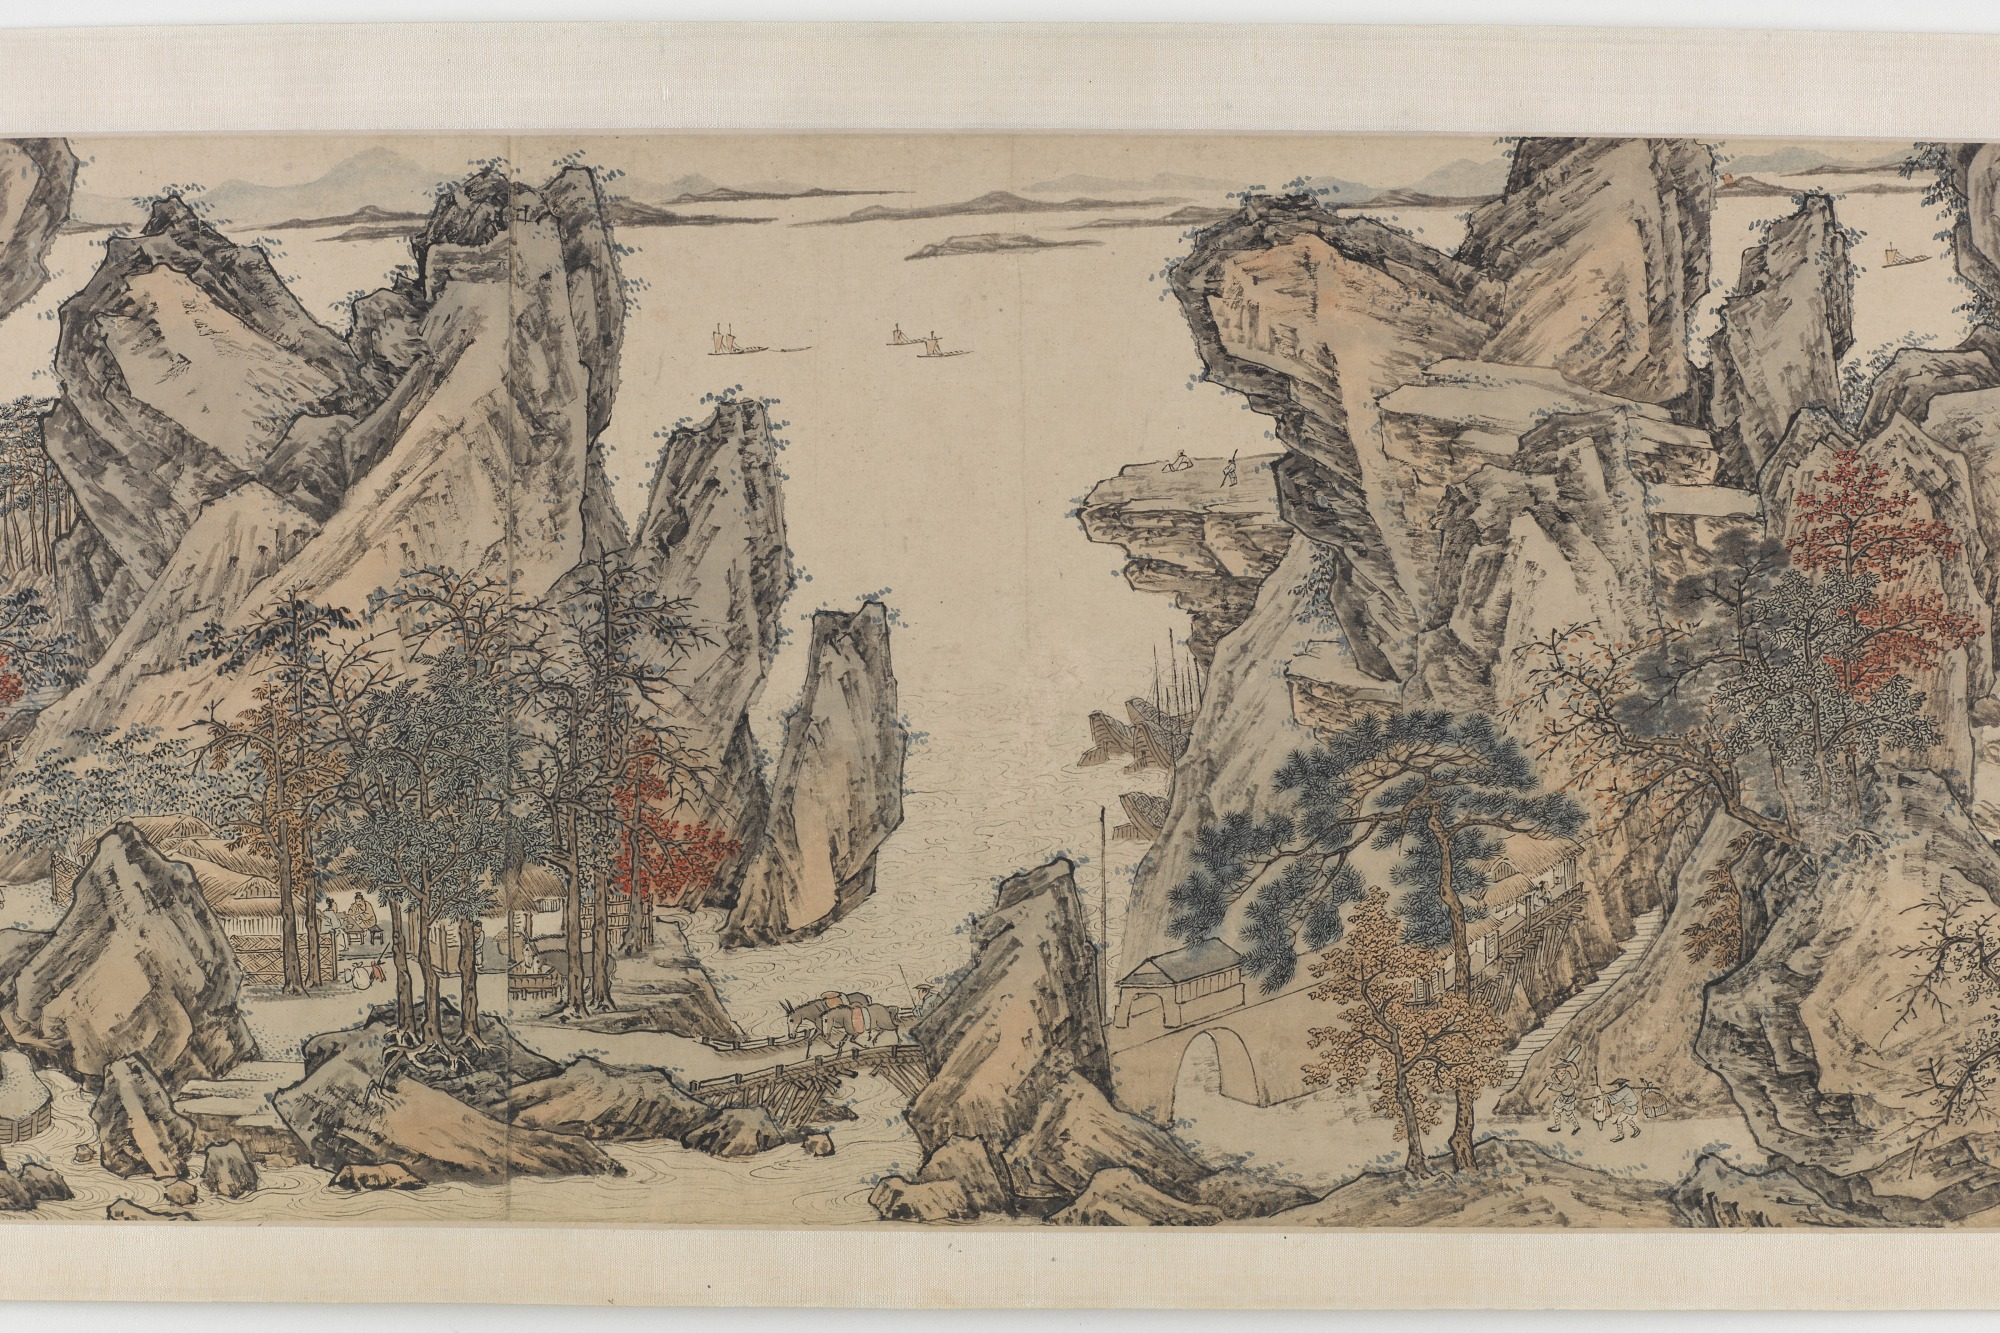 section 8: Landscape in the Style of Li Tang